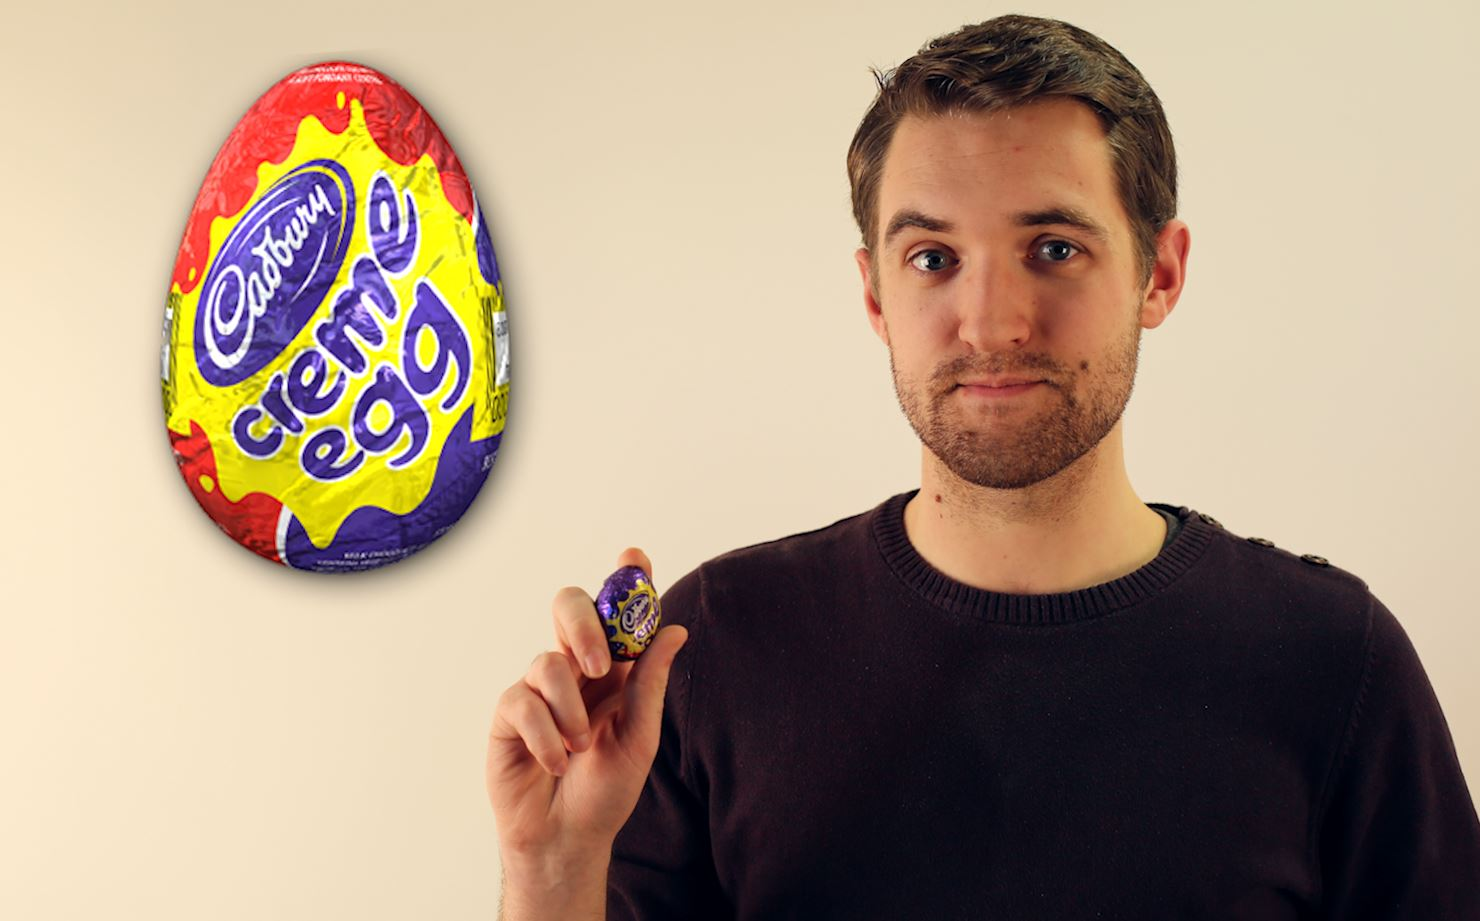 Cadbury is having a nightmare on Twitter over halal chocolate and how to pronounce Creme Egg